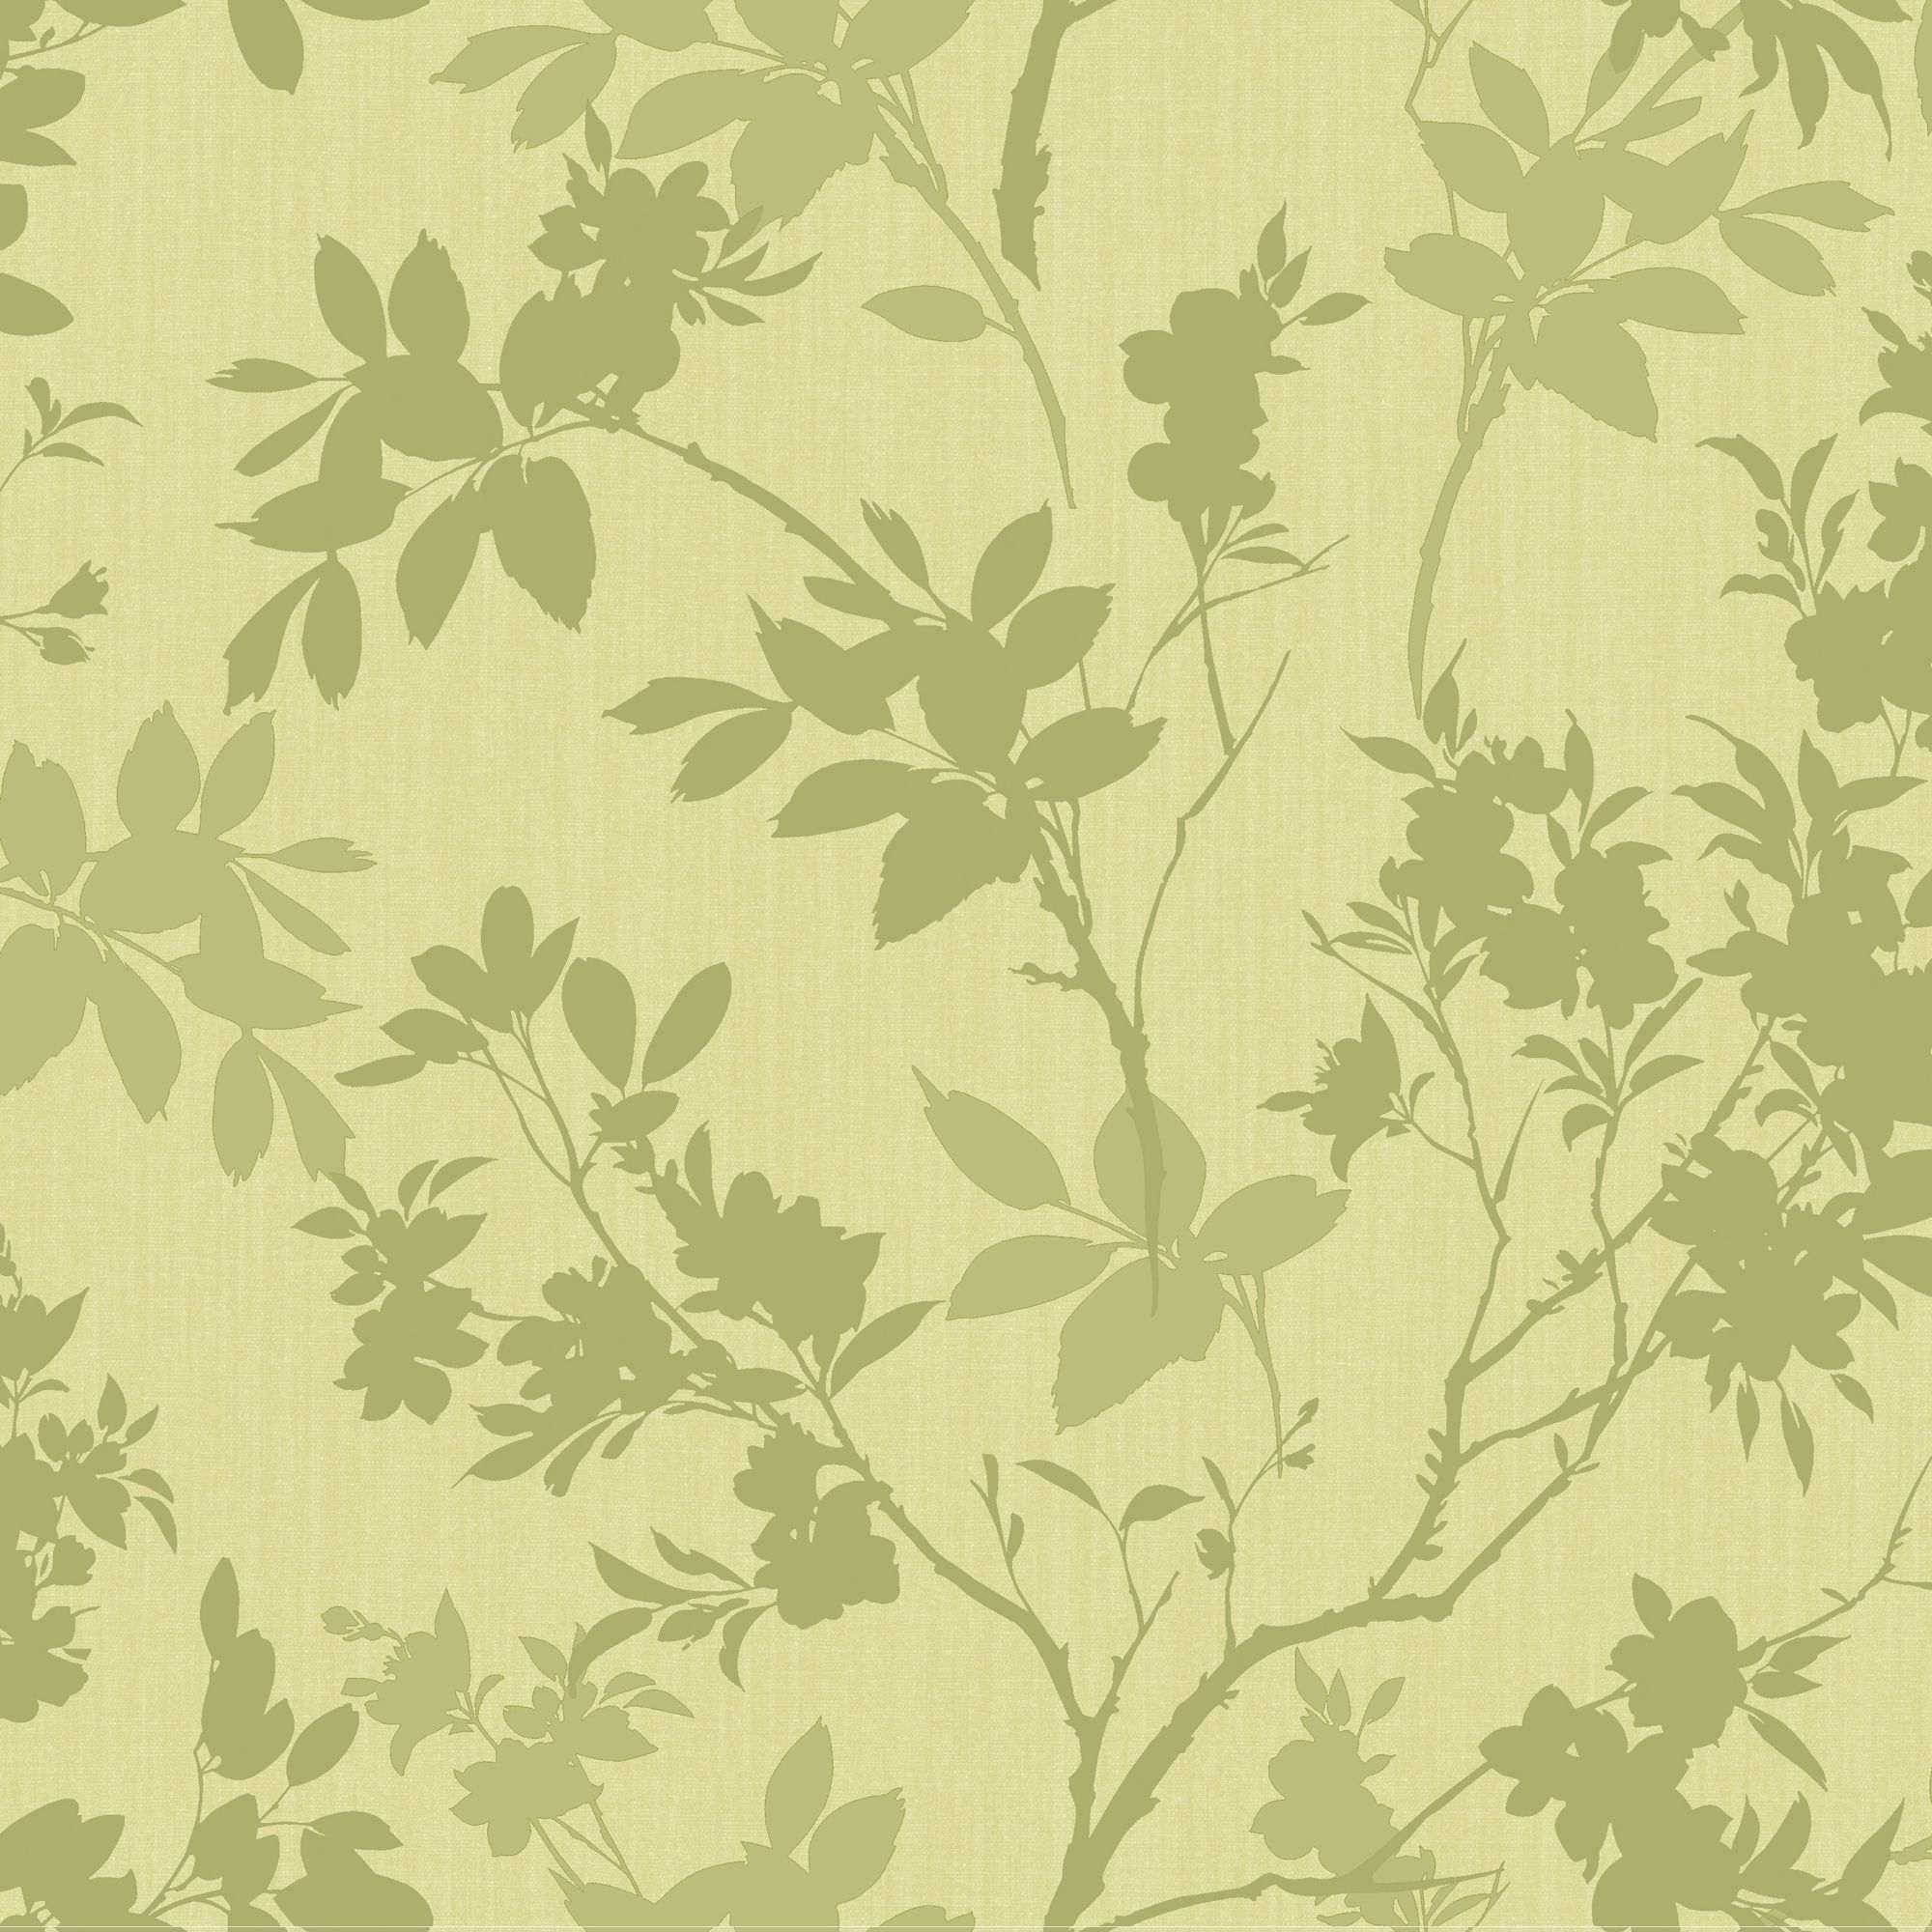 Arthouse eco divine motif green floral wallpaper B q bathroom design service